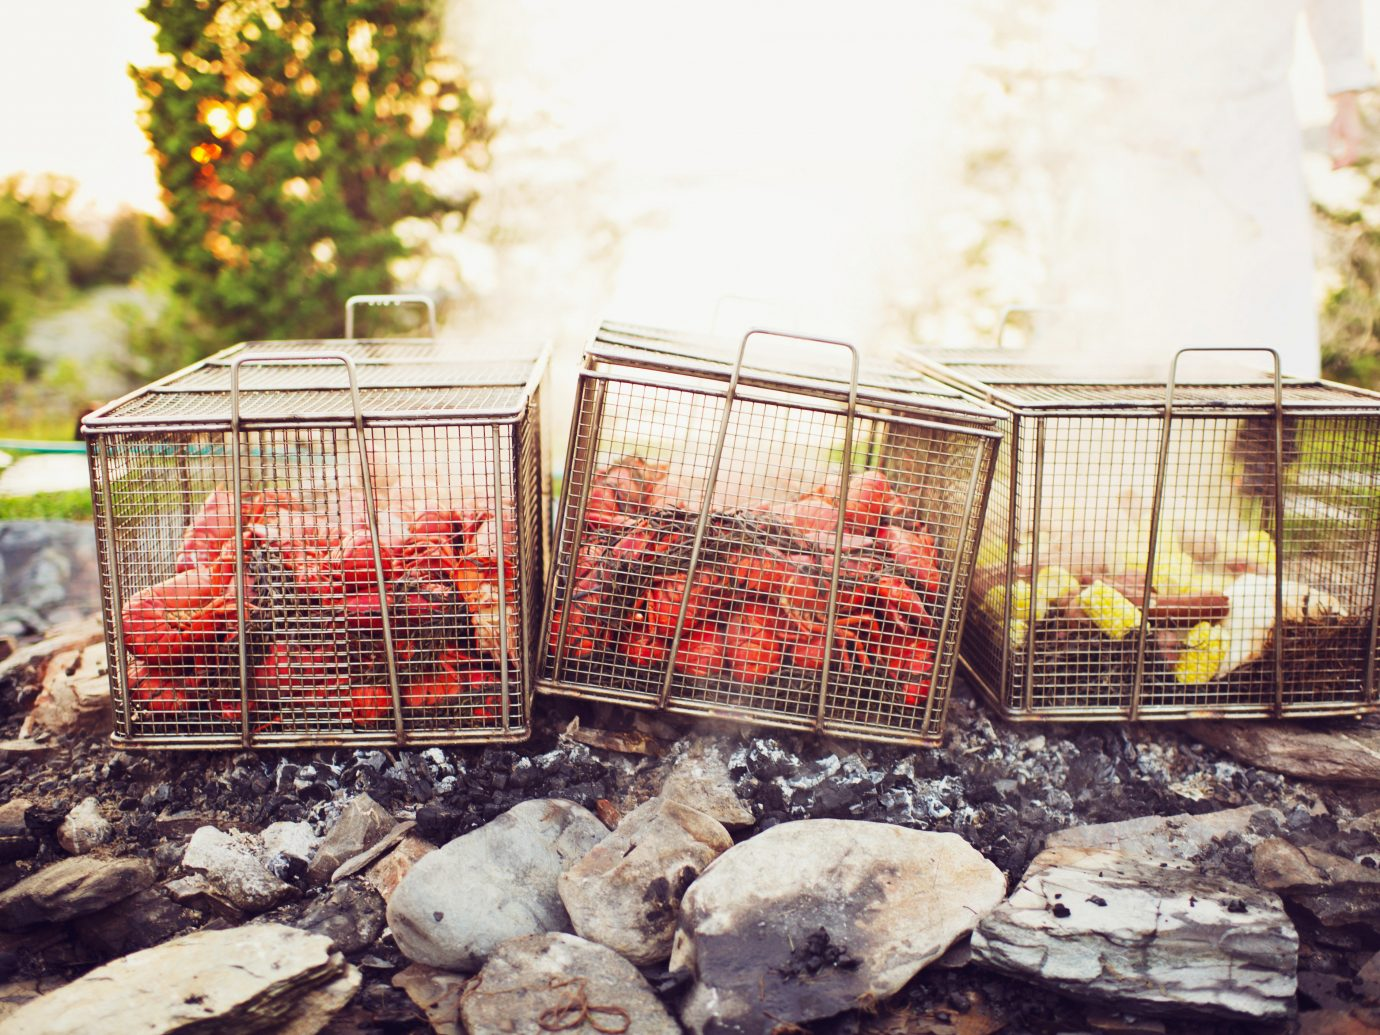 Lobster pots in Maine